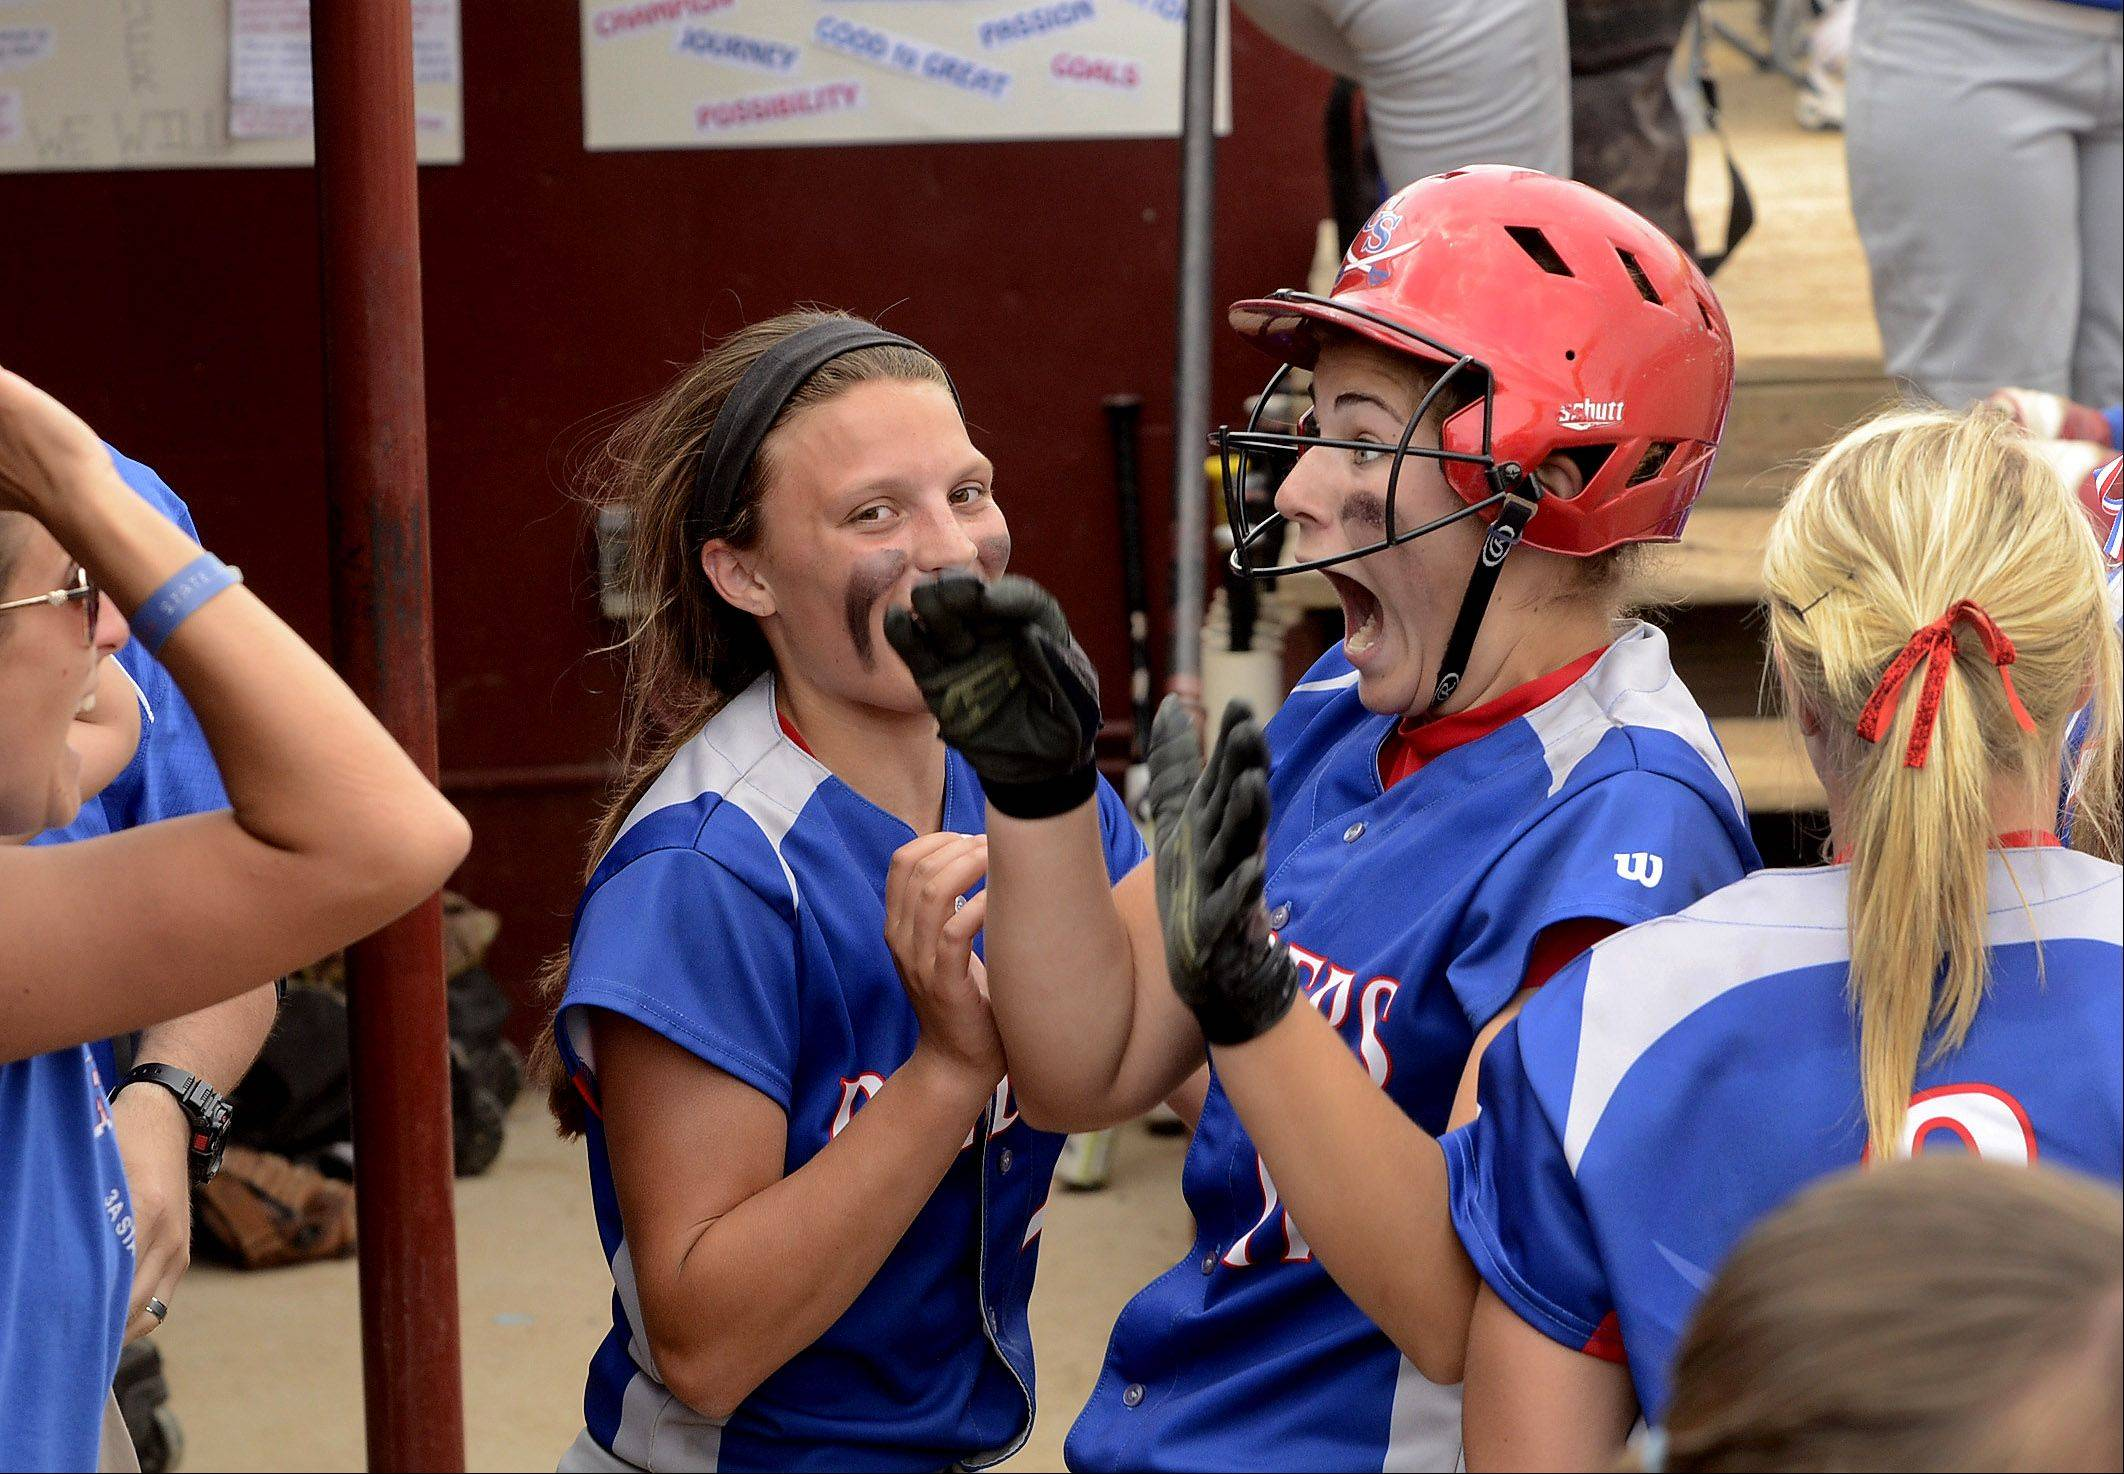 Glenbard South's Jane Trzaska celebrates with teammates in the dugout after singling to right in the top of the eighth inning for the eventual game-winning hit in the Class 3A state championship game between Glenbard South and Alton Marquette.